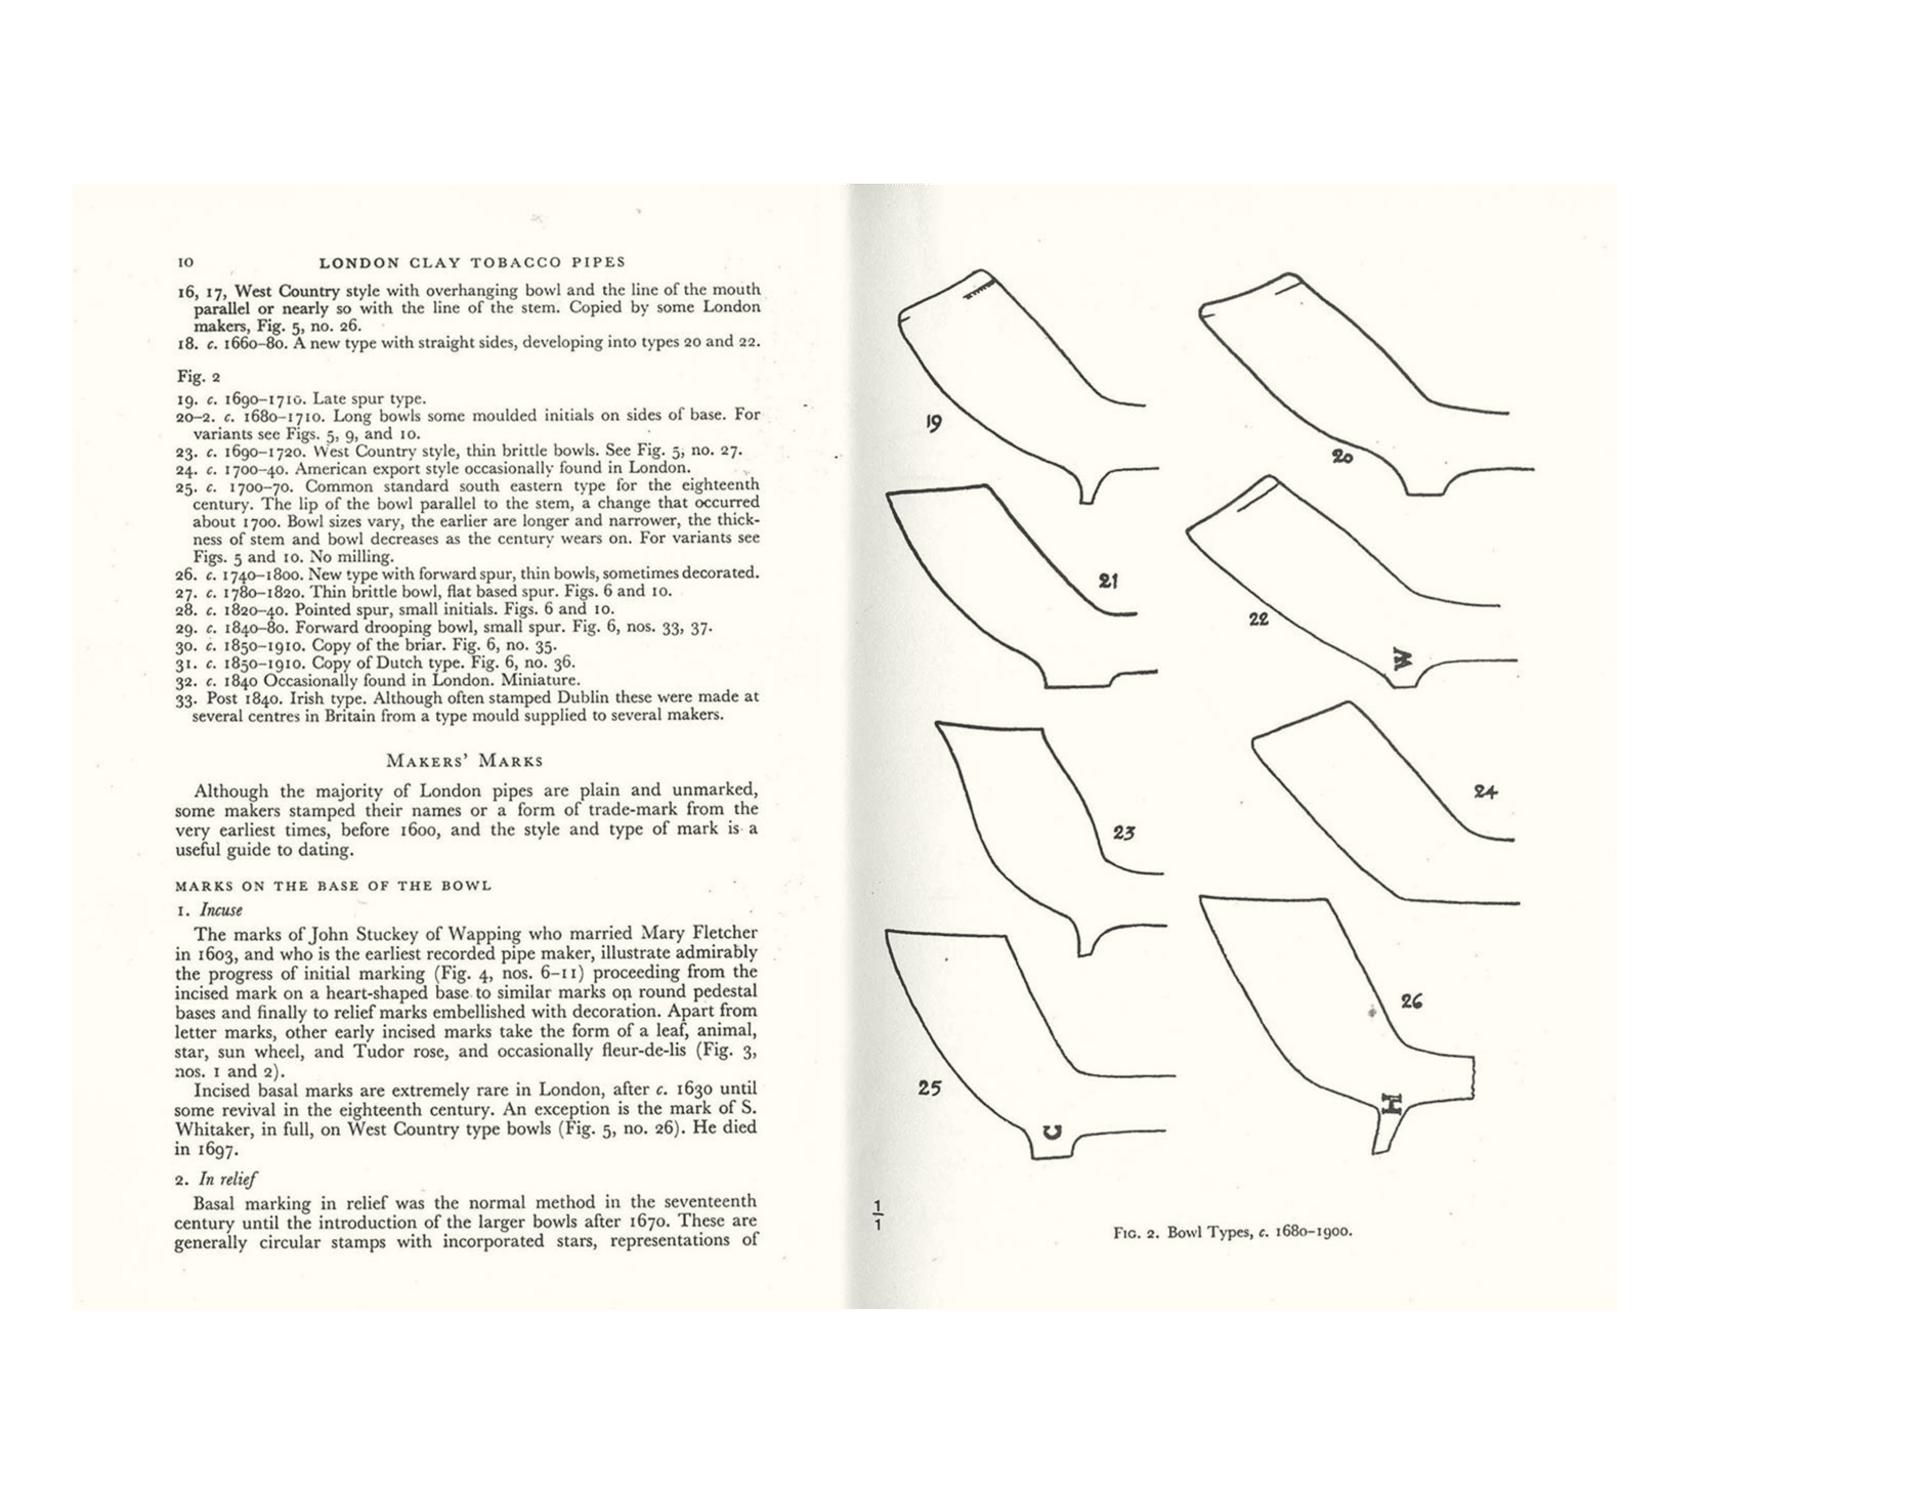 Clay pipe book — Atkinson & Oswald